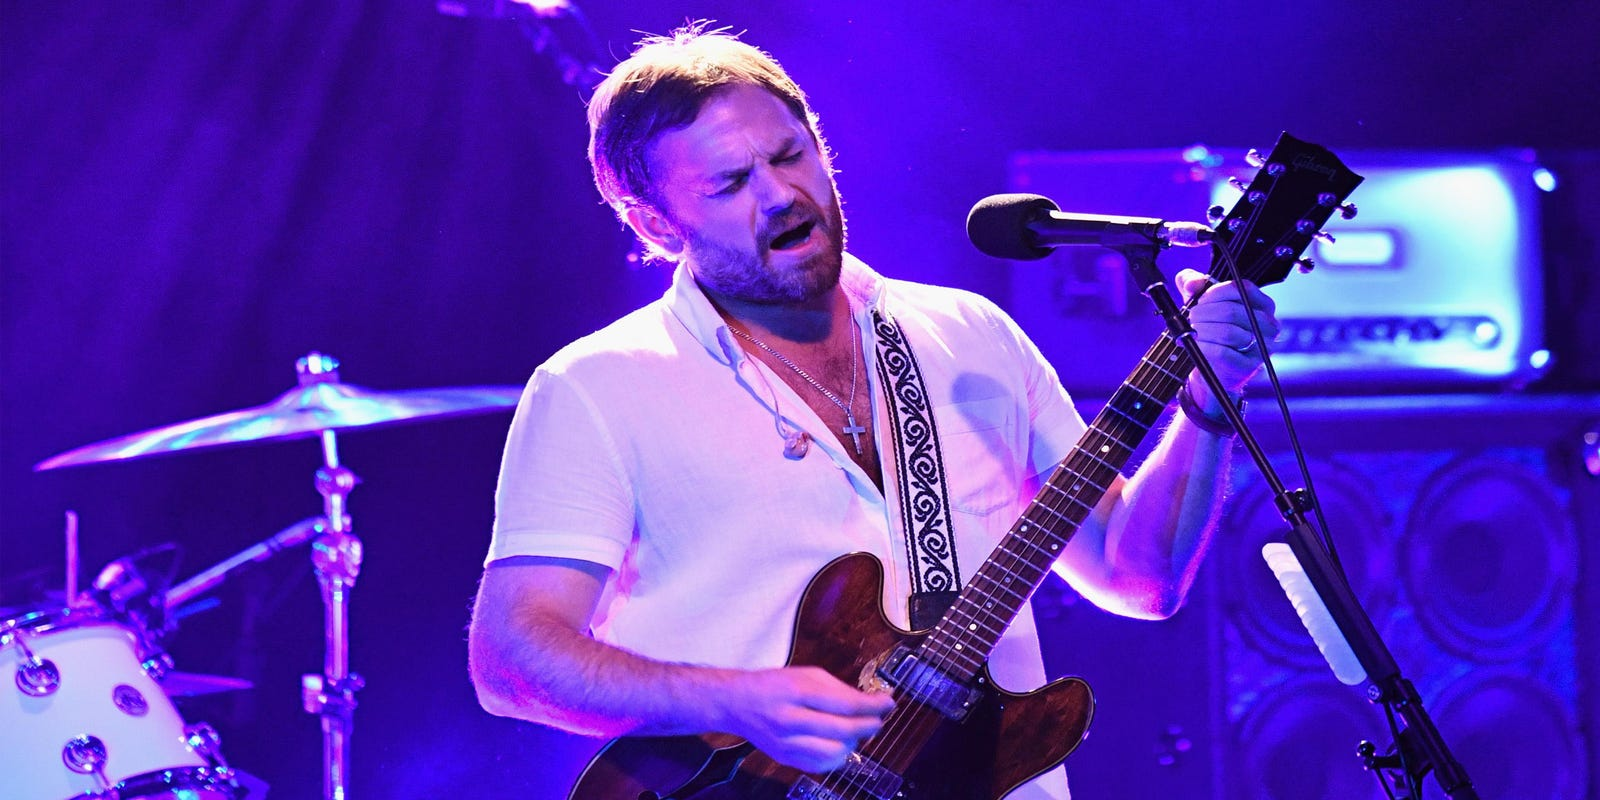 Kings of Leon headed to DTE in August